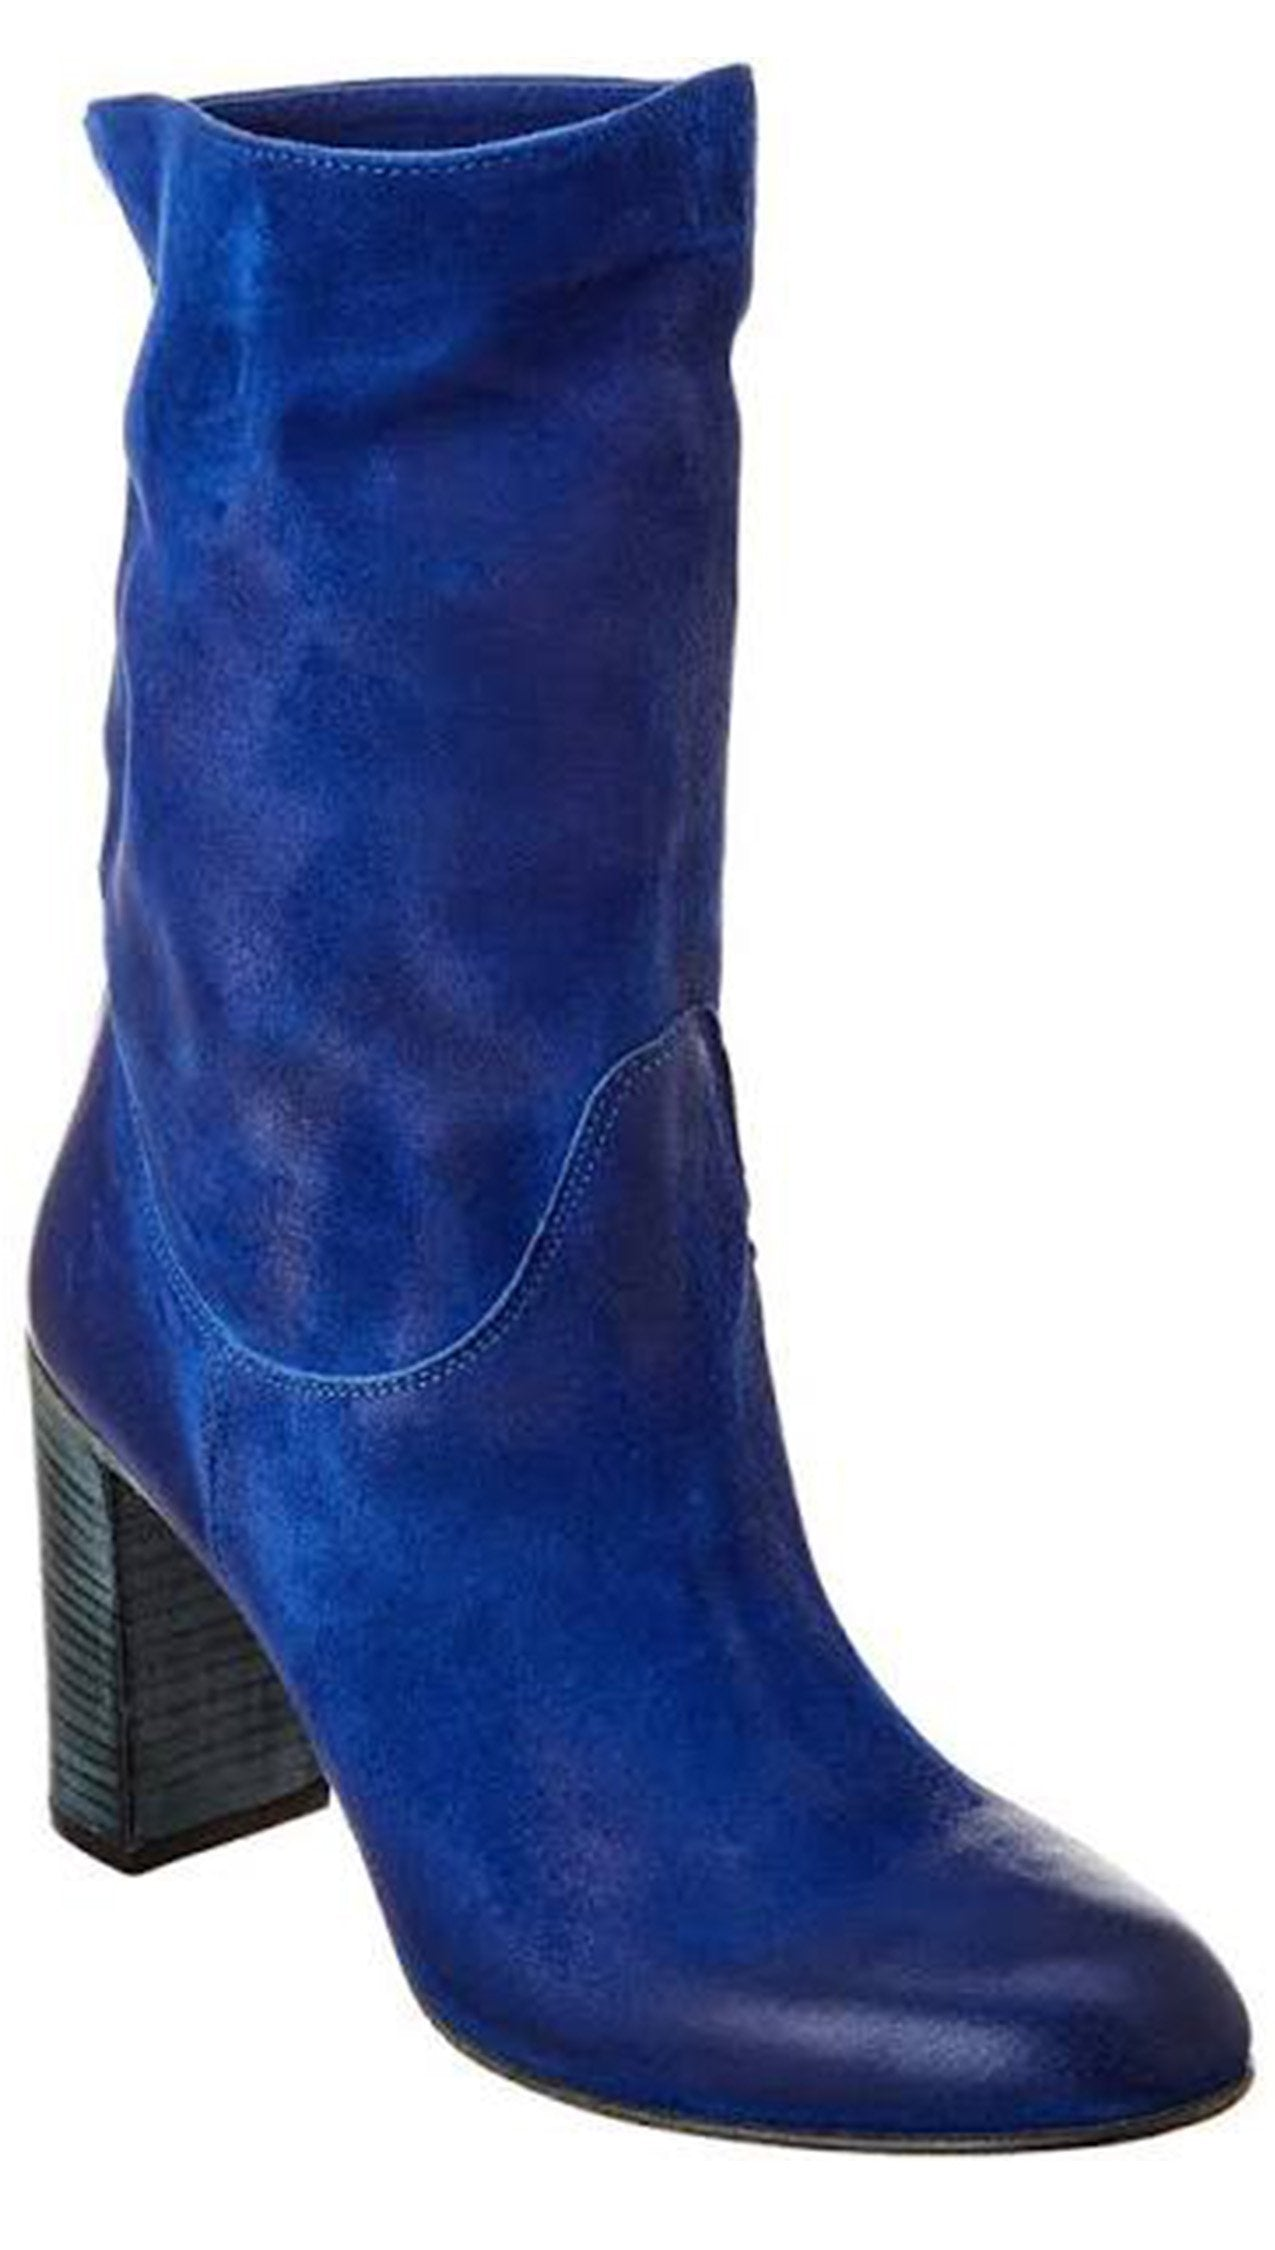 Free People Dakota Heel Boot Cobalt Blue Suede Leather Slouchy Ankle Boots